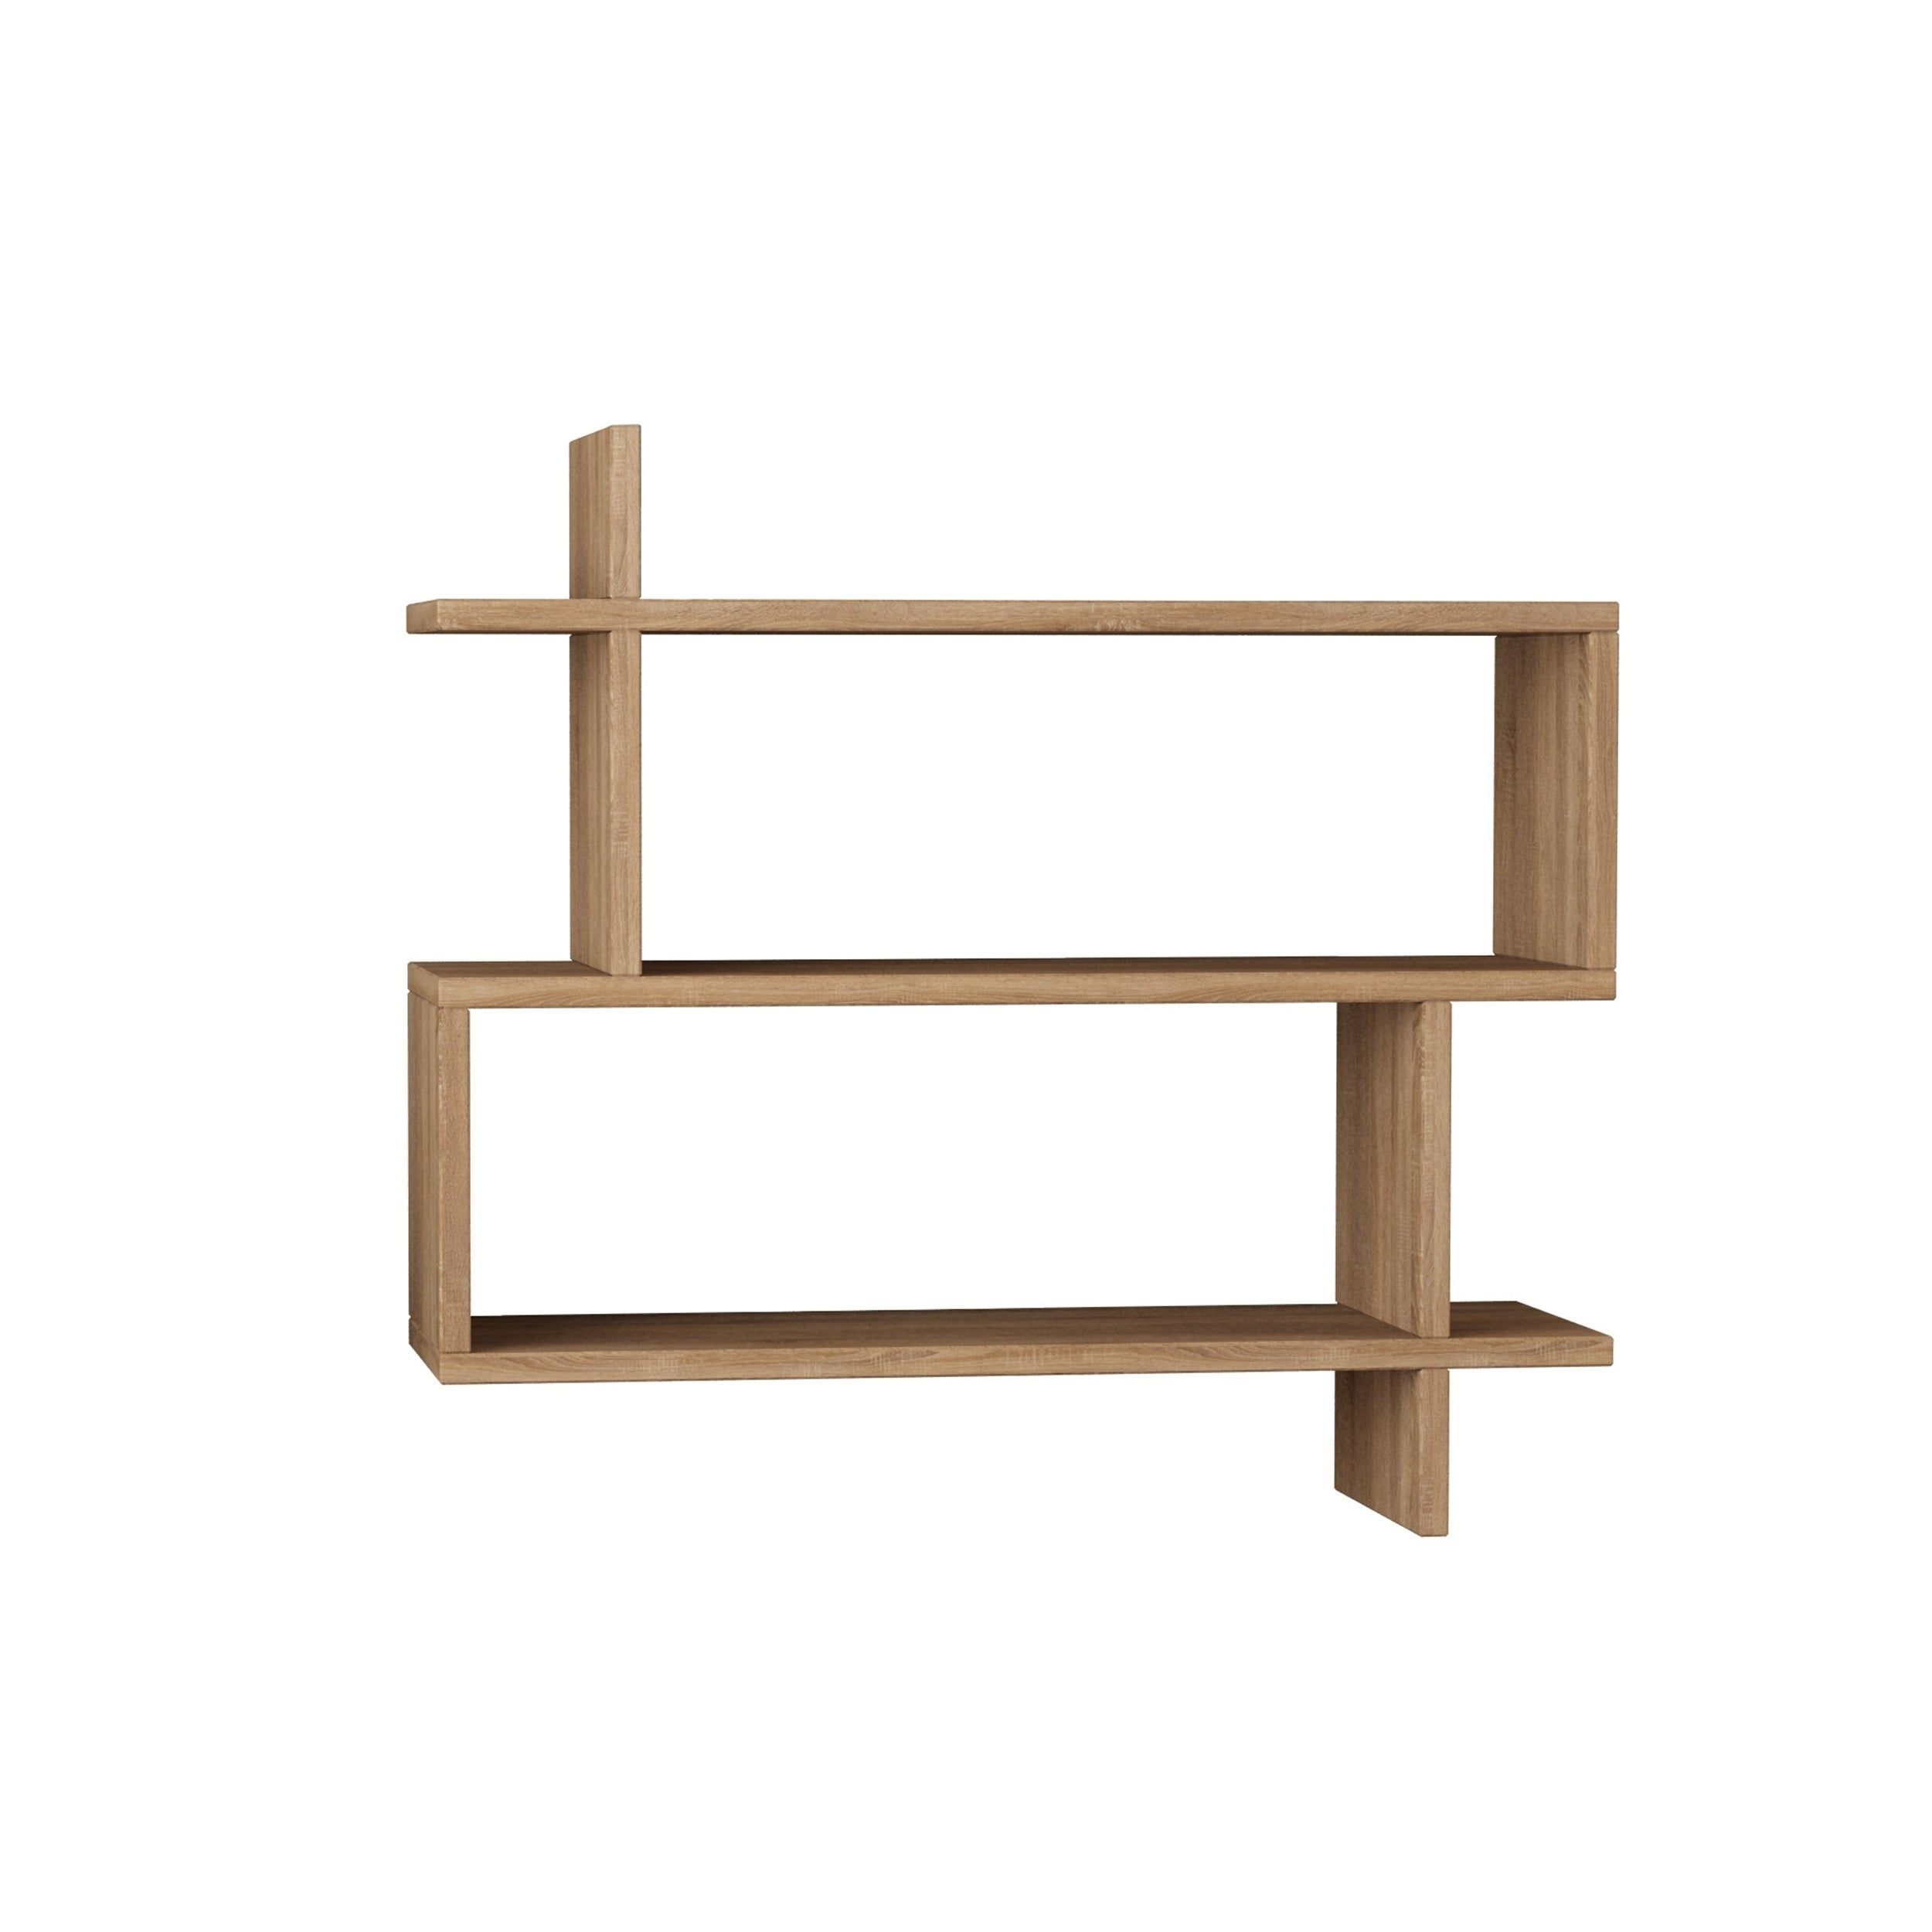 Westcott Modern Wall Shelf 27 5 X 26 8 Storage Shelving Unit